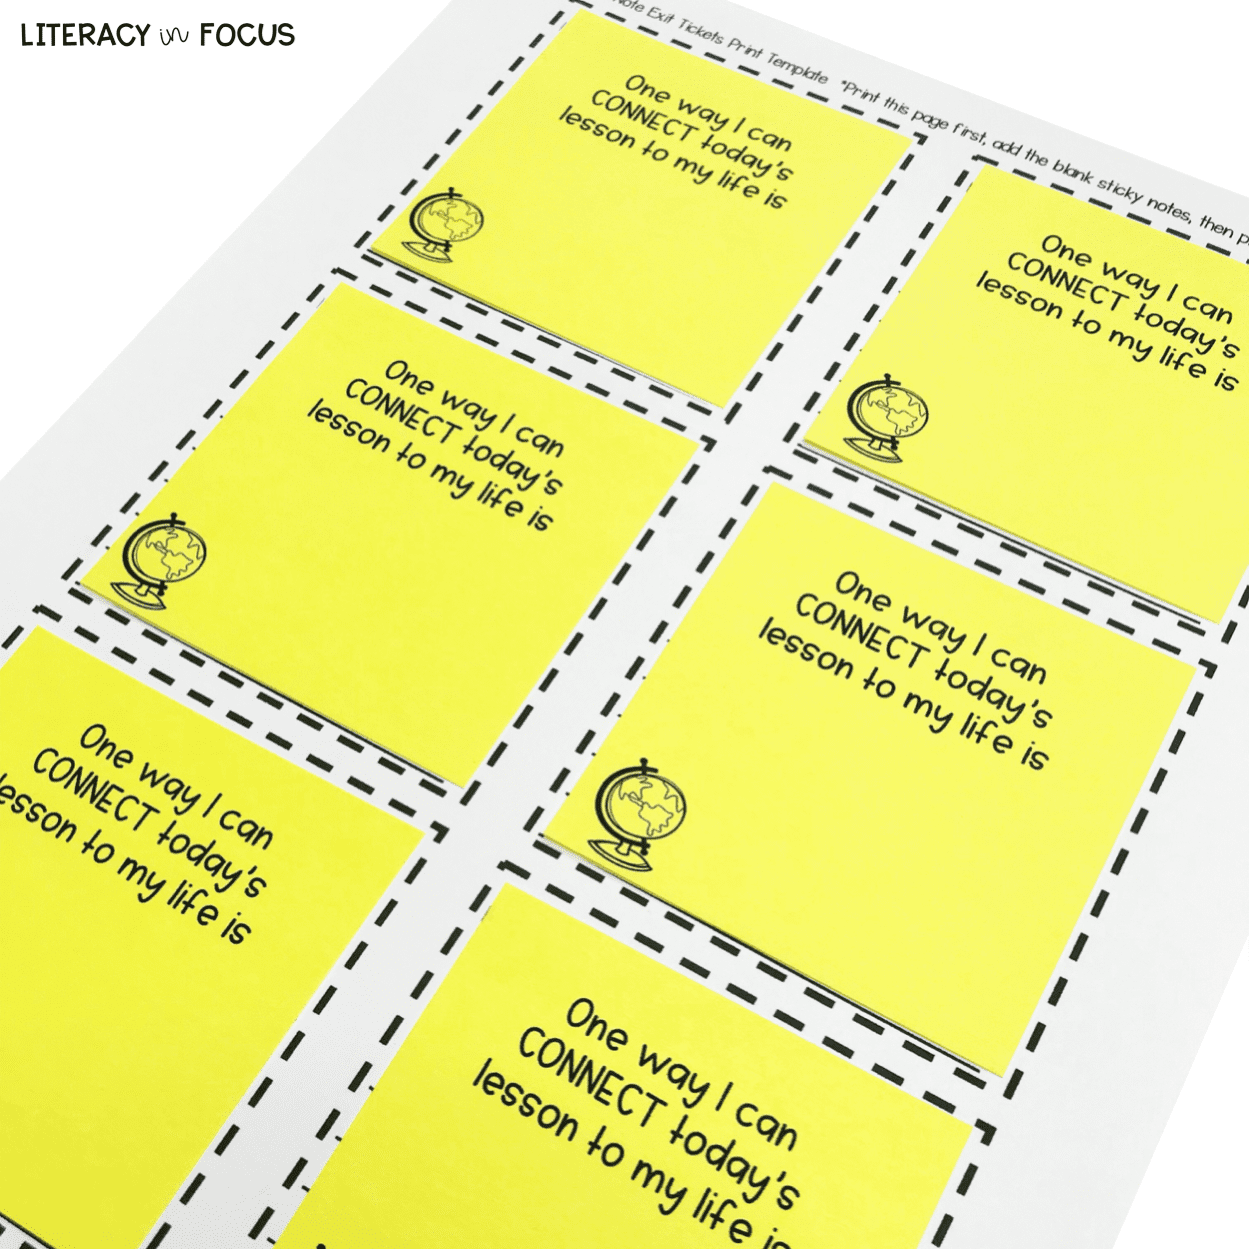 11 compelling reasons to use exit tickets literacy in focus a